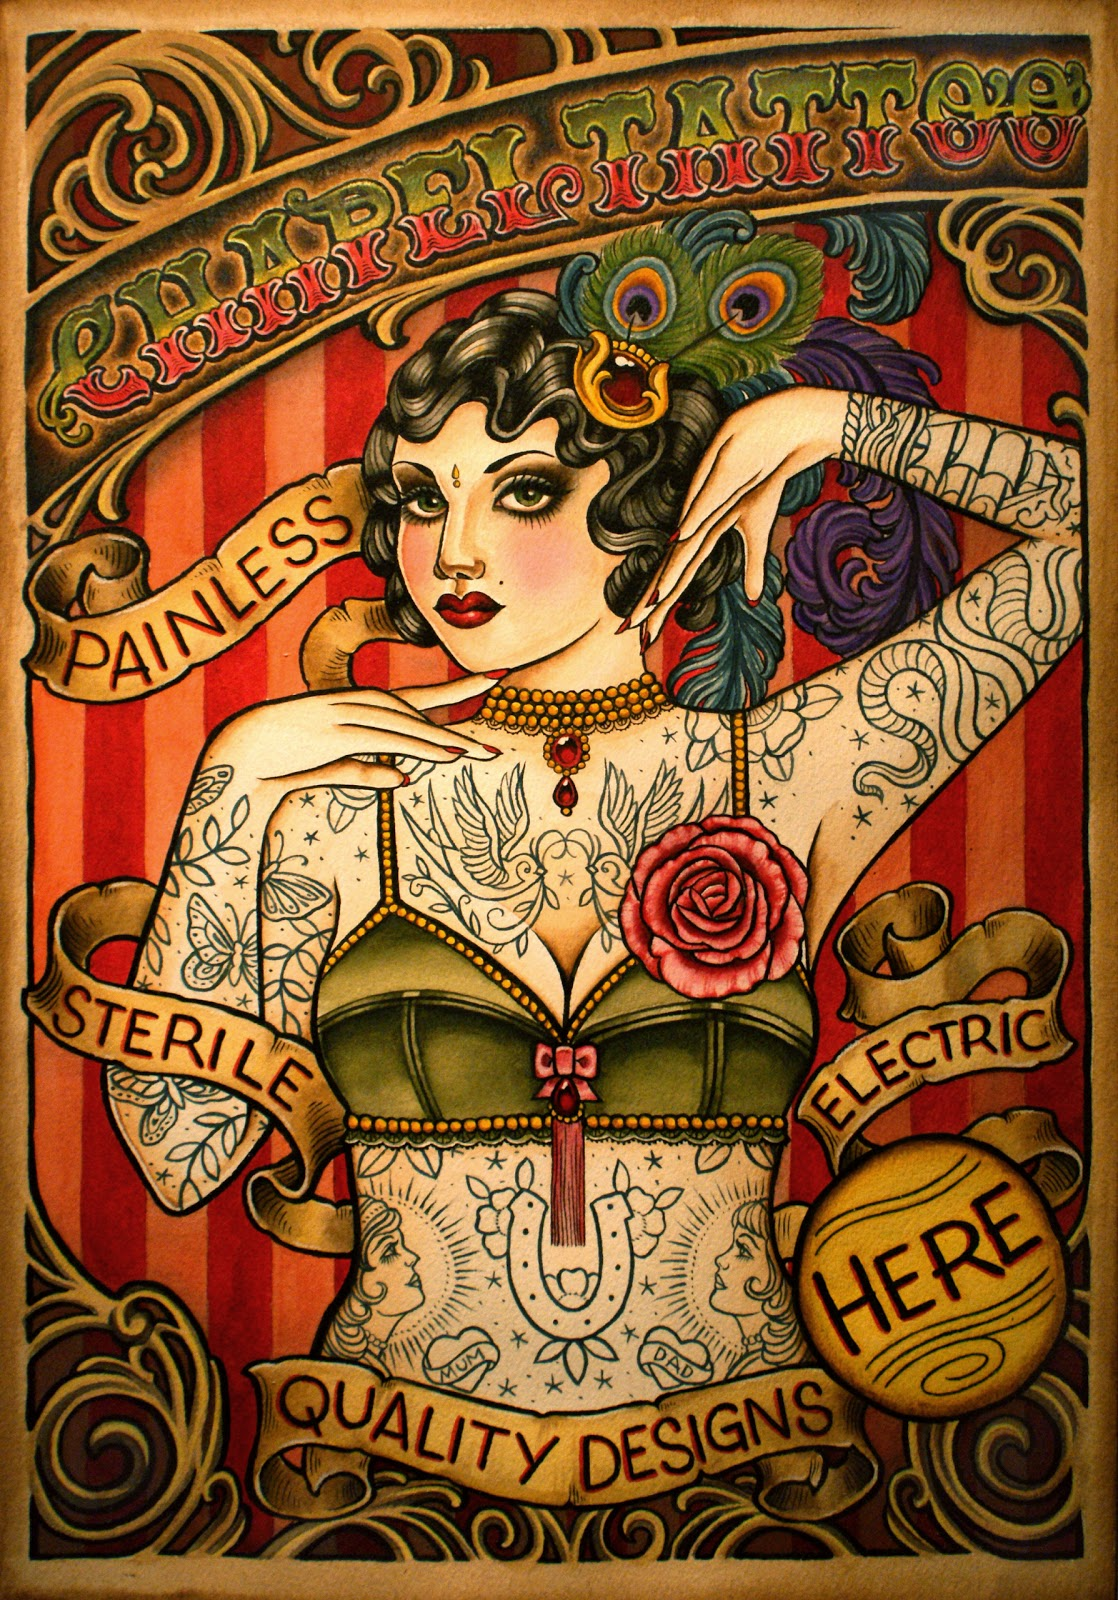 Rachel Brice Tattoo additionally 20 Old School Fonts For Creating Vintage Sign Art furthermore Carnival Circus likewise Fun Express Carnival Bottle Labels additionally How To Create Vintage Circus Poster. on old fashioned carnival font